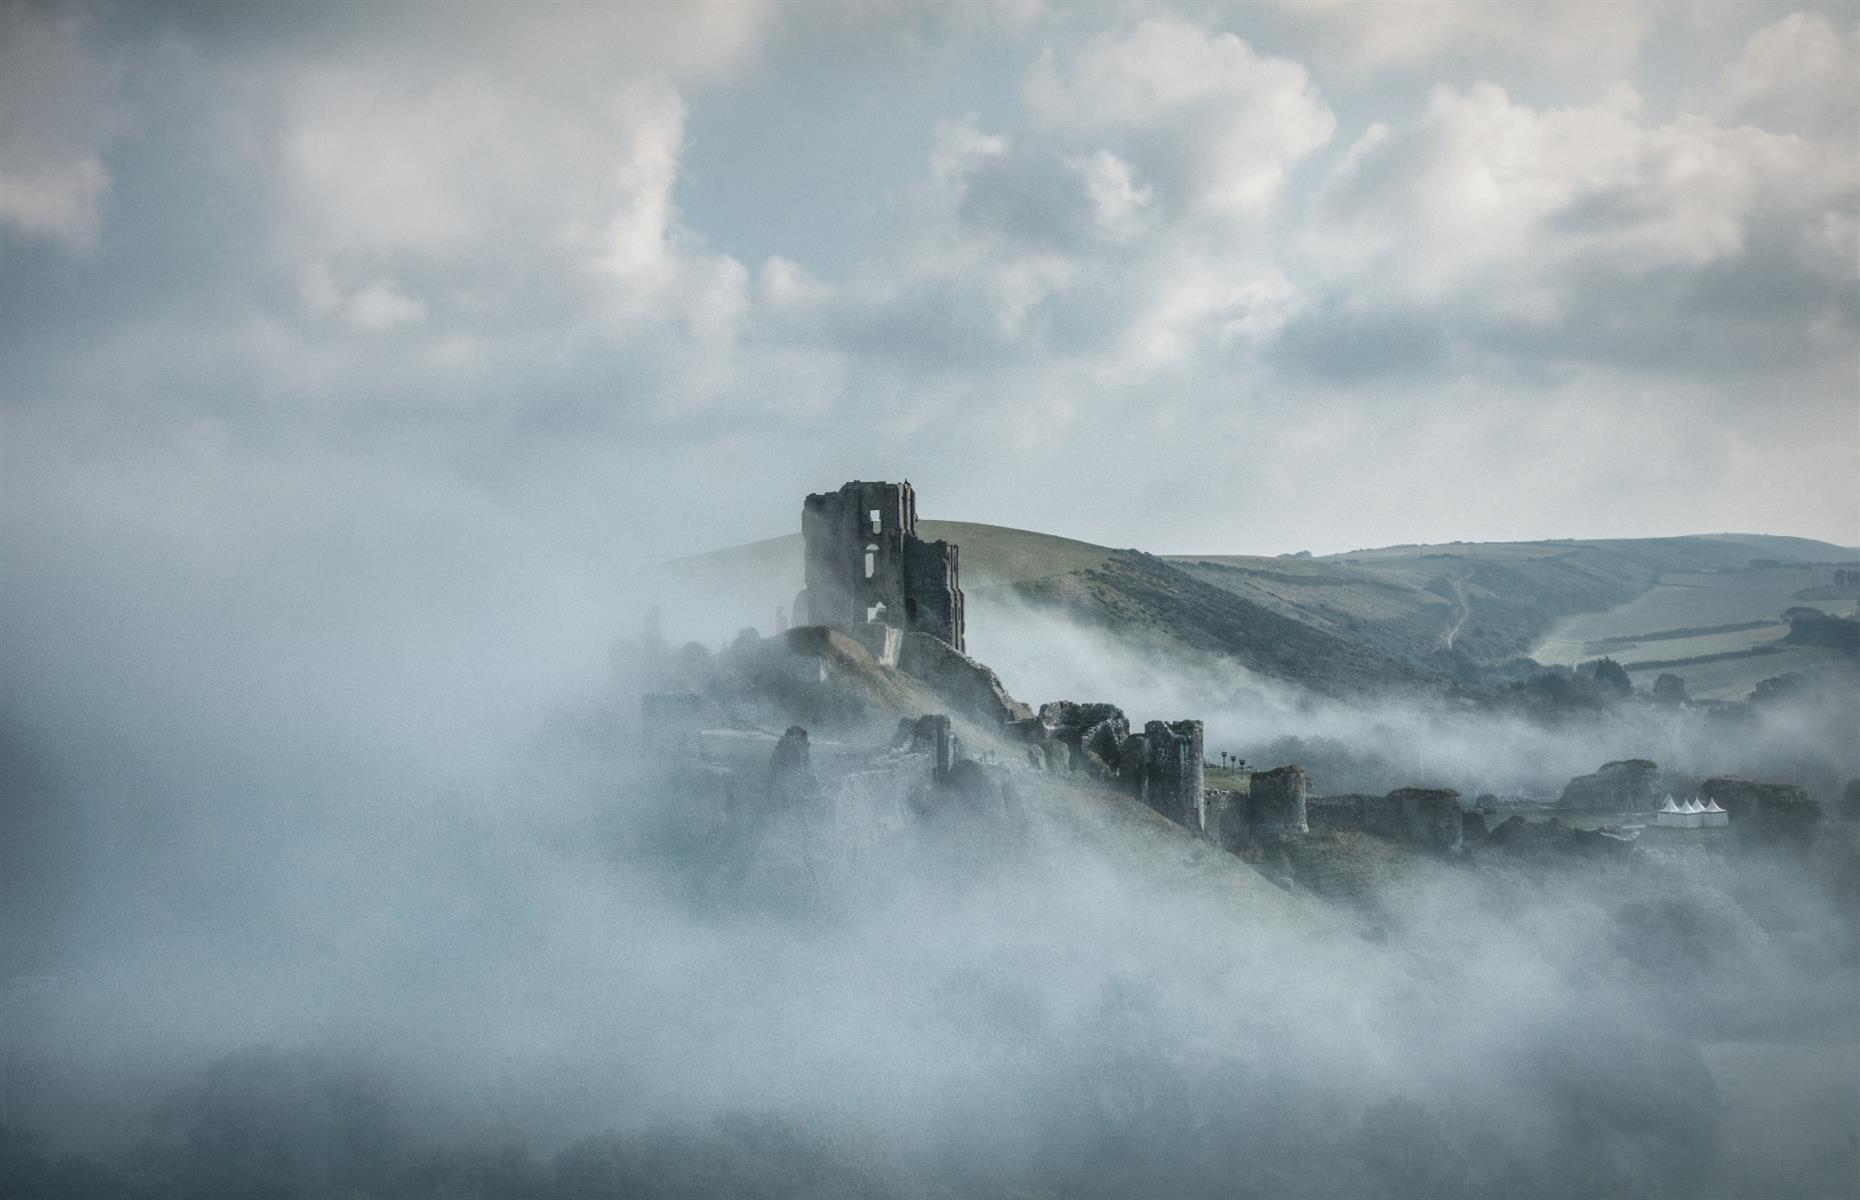 Slide 2 of 29: Corfe Castle, on the Isle of Purbeck in Dorset, has been a romantic ruin on the English landscape for 350 years. Built by William the Conqueror in the early 12th century, it's seen its share of horror. In the 13th century, Bad King John lived up to his name when he starved 22 Frenchmen to death in the dungeons. In 1572, Queen Elizabeth I sold the castle into private hands and it was bought by Sir John Bankes in 1635.